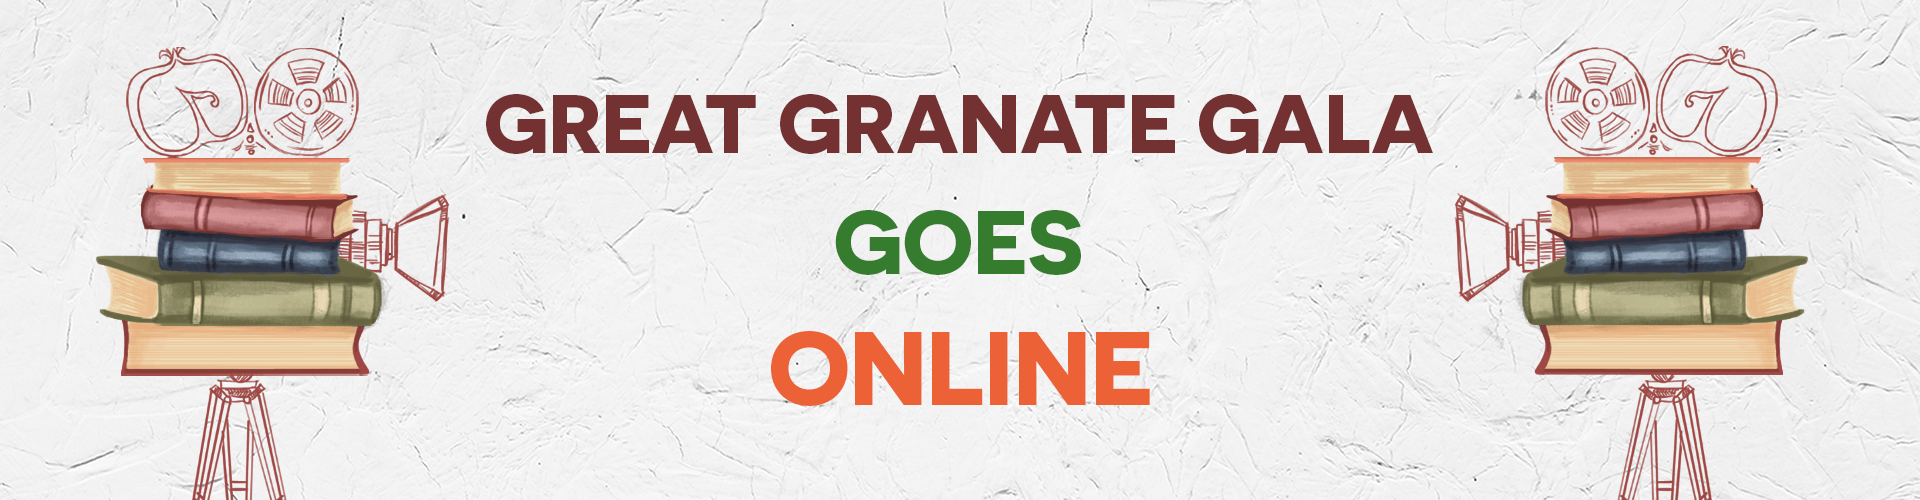 Great Granate Gala Goes Online 2020